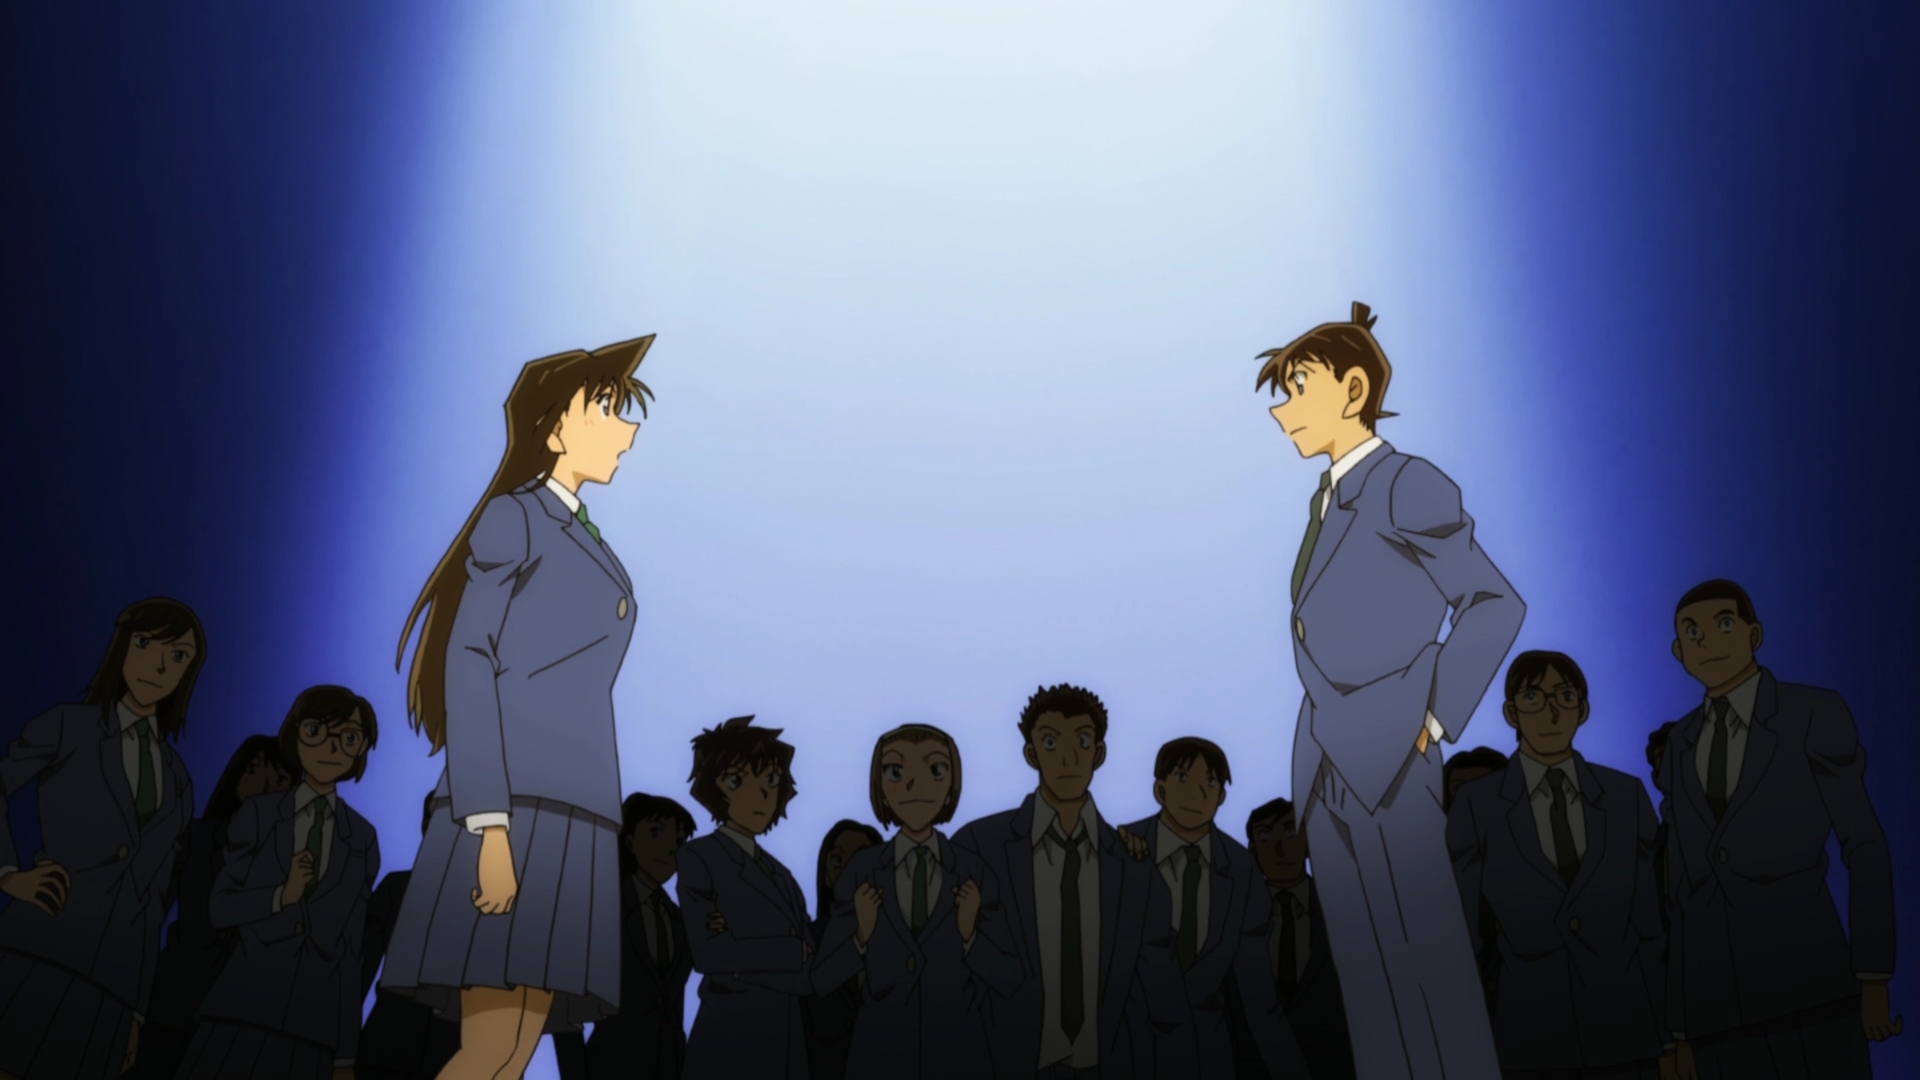 Ran and Shinichi faceoff while their classmates look on in the background